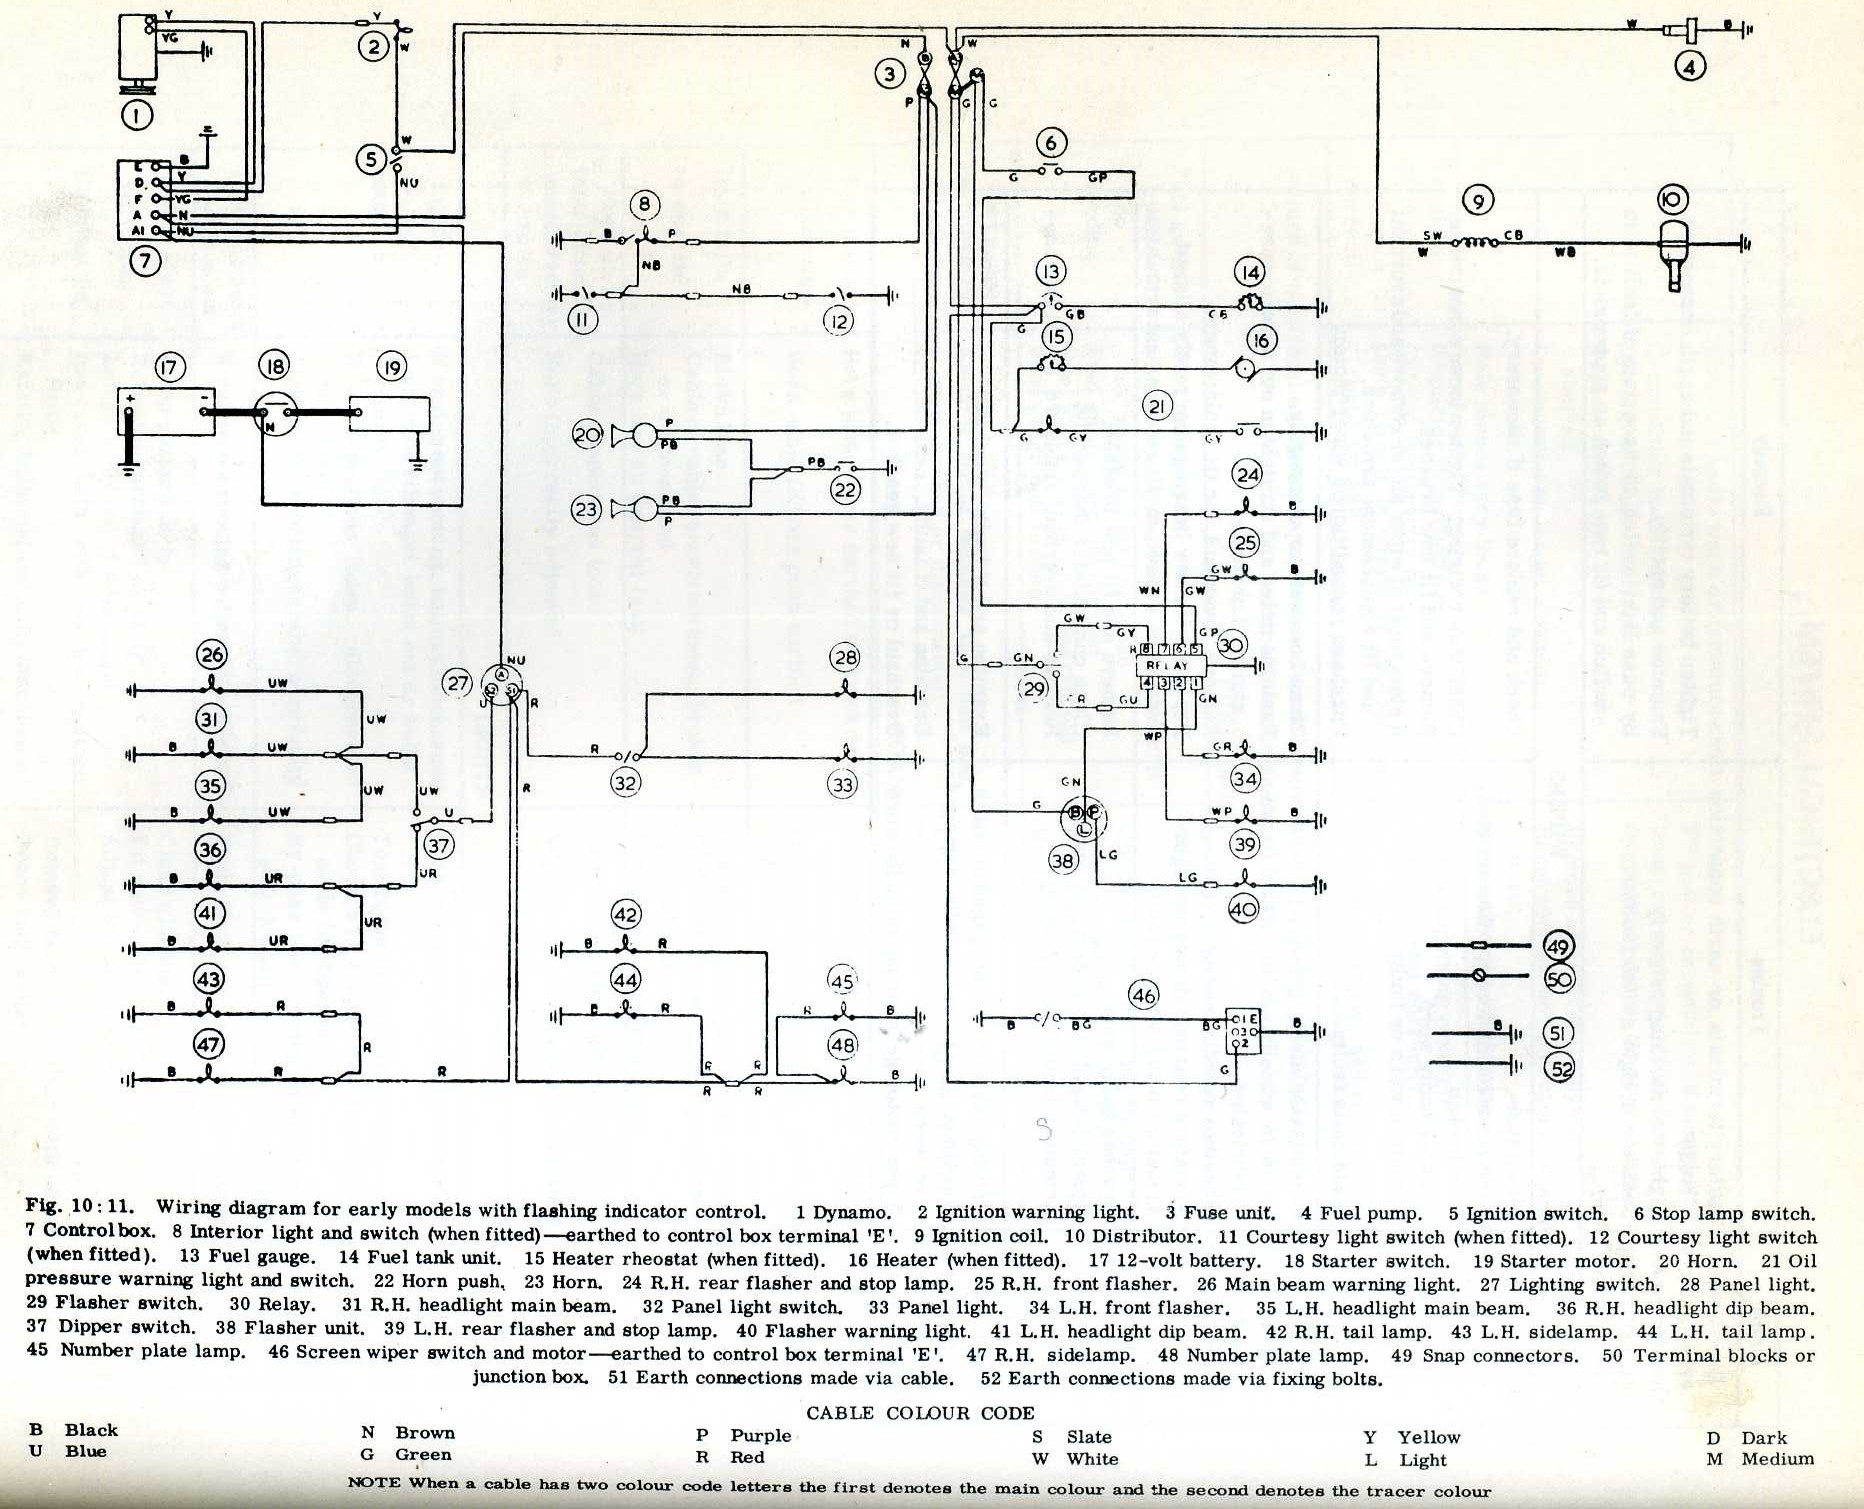 Fiat 600 Wiring Diagram Smart Diagrams 1975 Chevy Fuse Block Custom Trusted U2022 Rh Xerospace Co